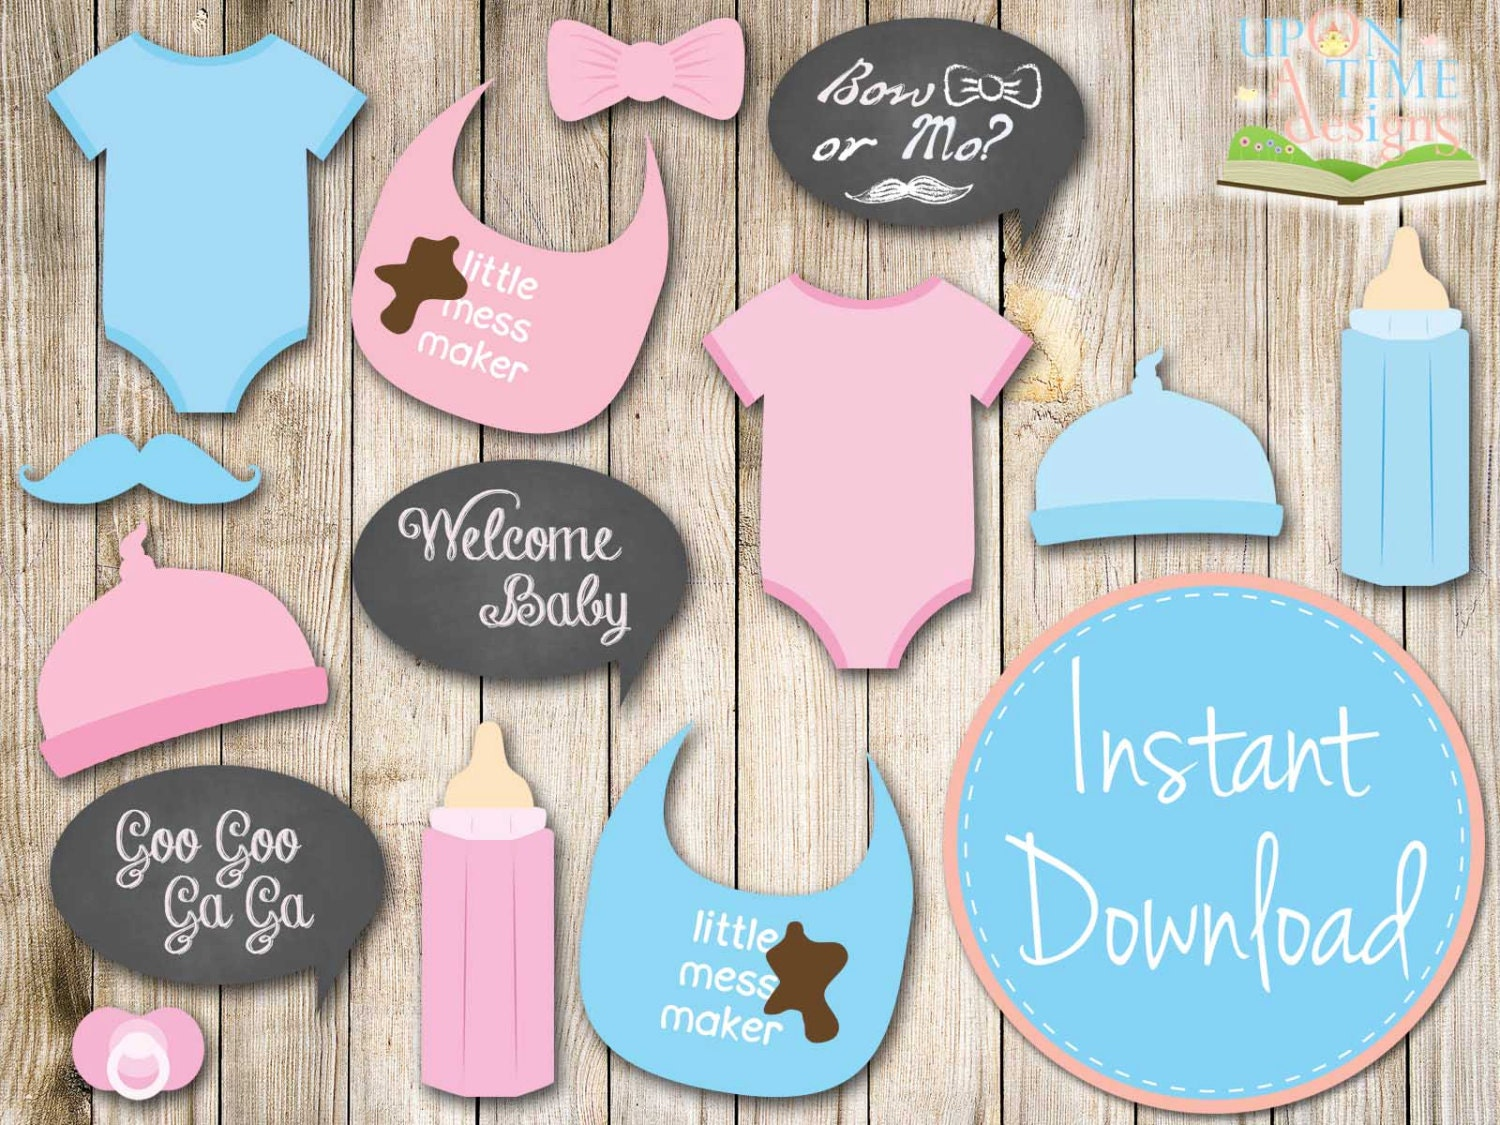 Monster image regarding baby shower photo booth props printable